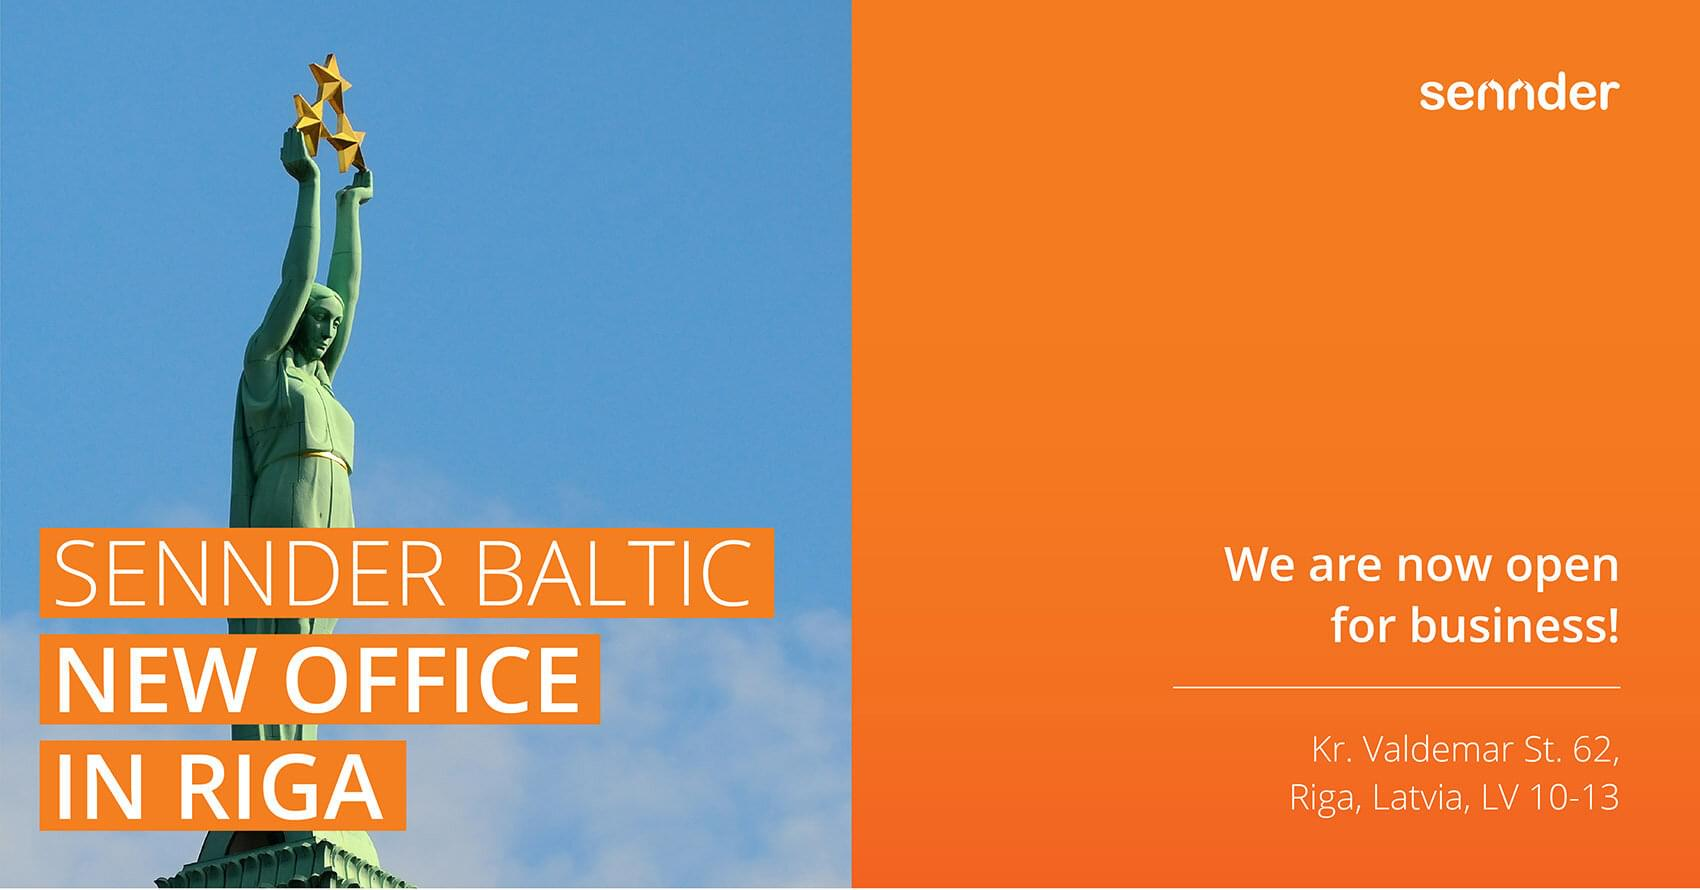 sennder Baltic, new office in Riga